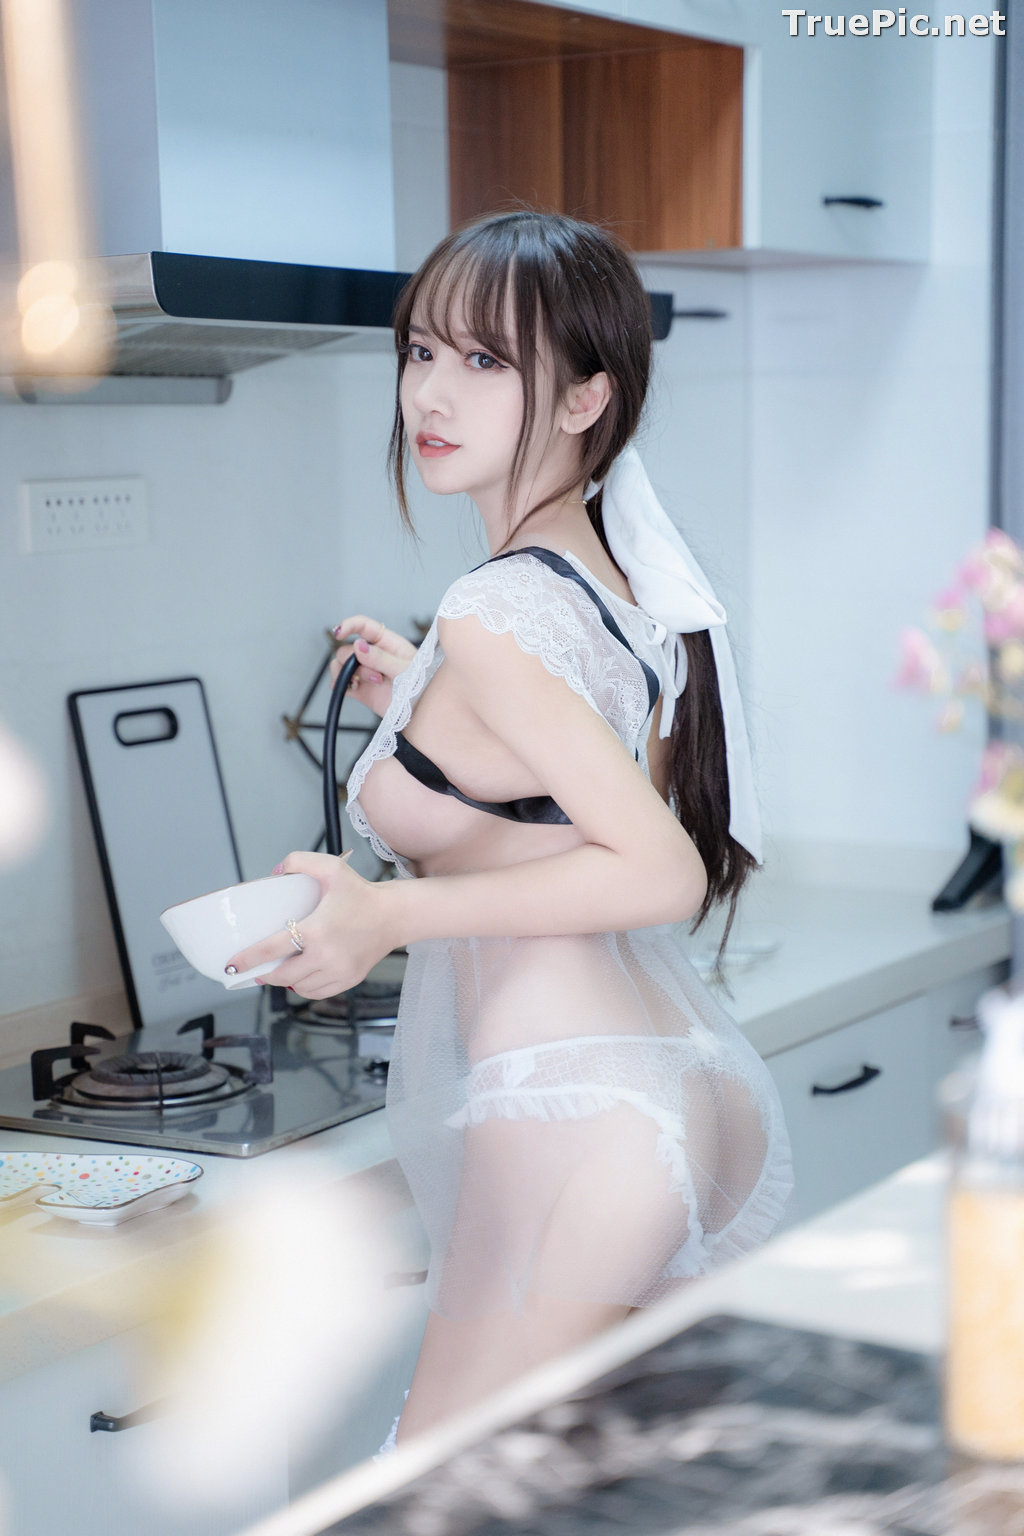 Image Chinese Model – 过期米线线喵 (米線線sama) – Sexy Housewife - TruePic.net - Picture-20